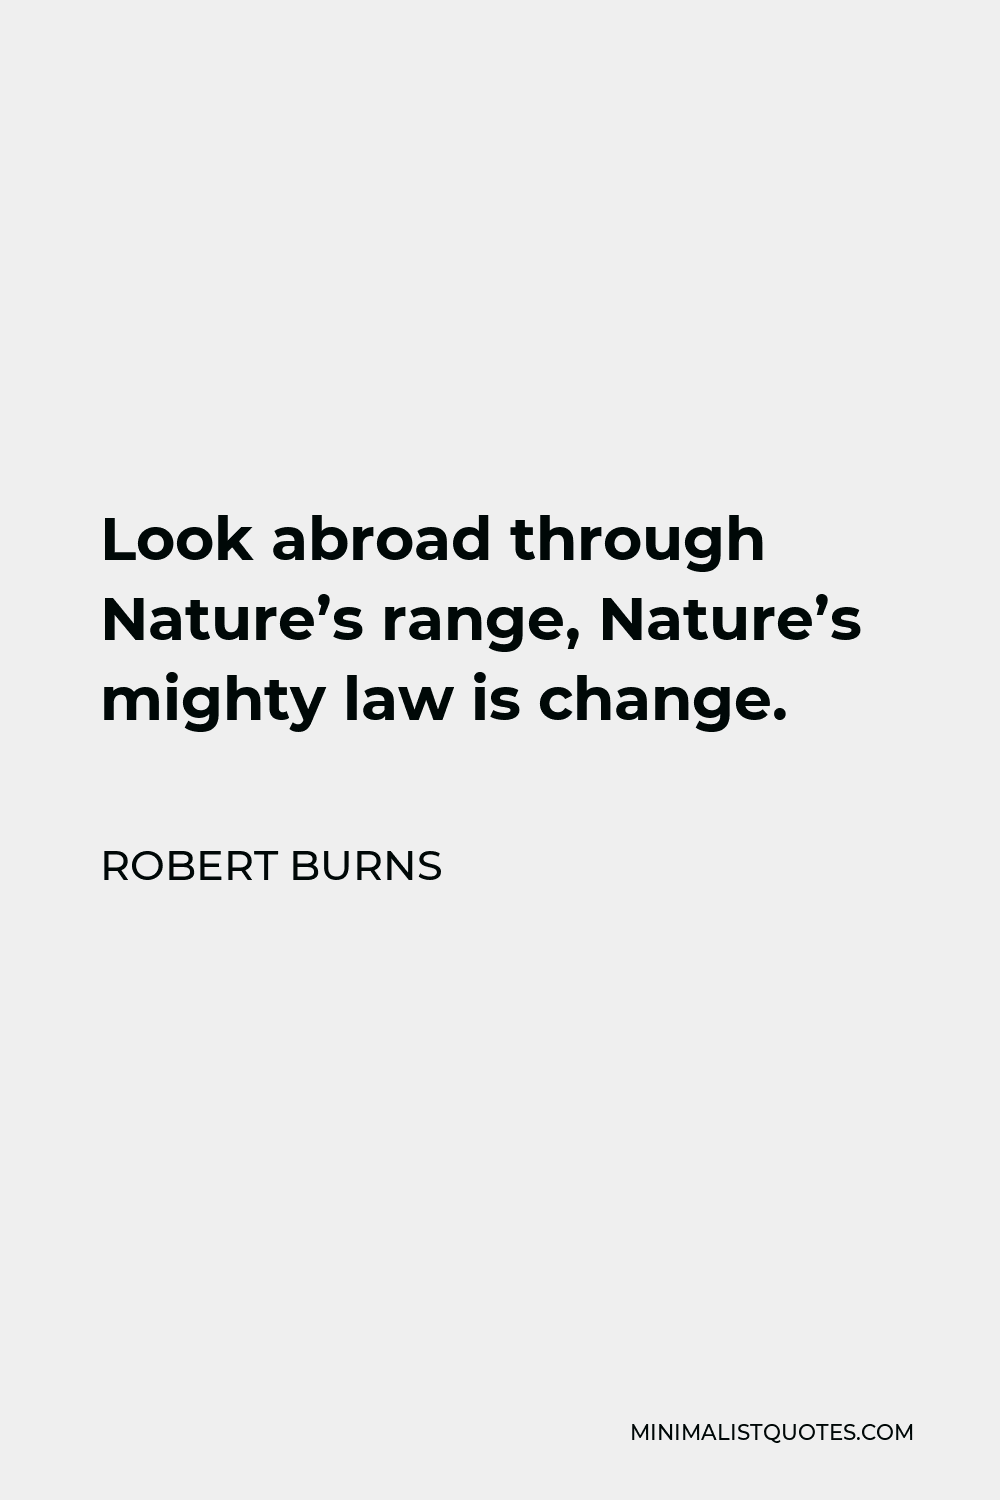 Robert Burns Quote - Look abroad through Nature's range, Nature's mighty law is change.